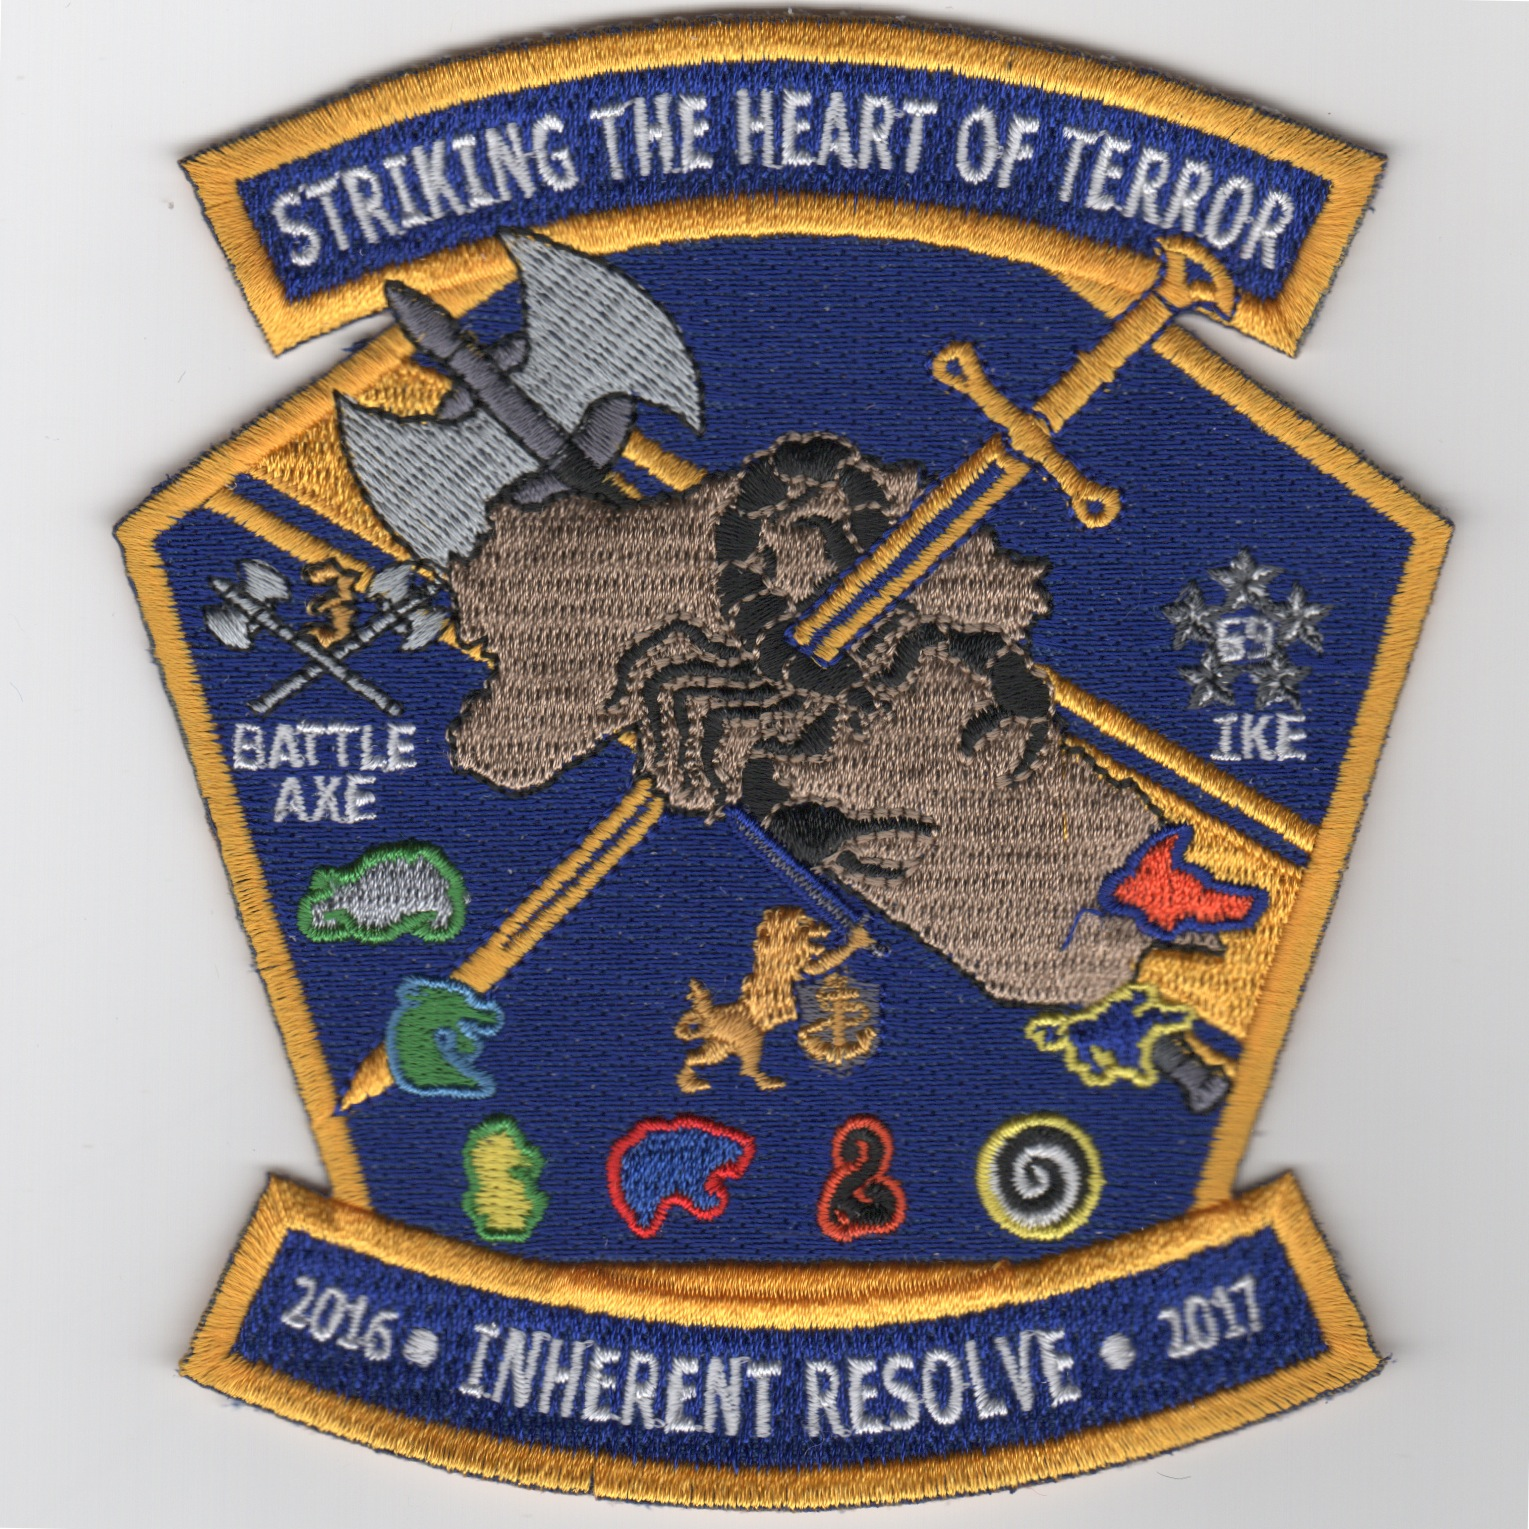 CVN-69/CVW-3 2016 OIR 'Heart of Terror' Cruise Patch